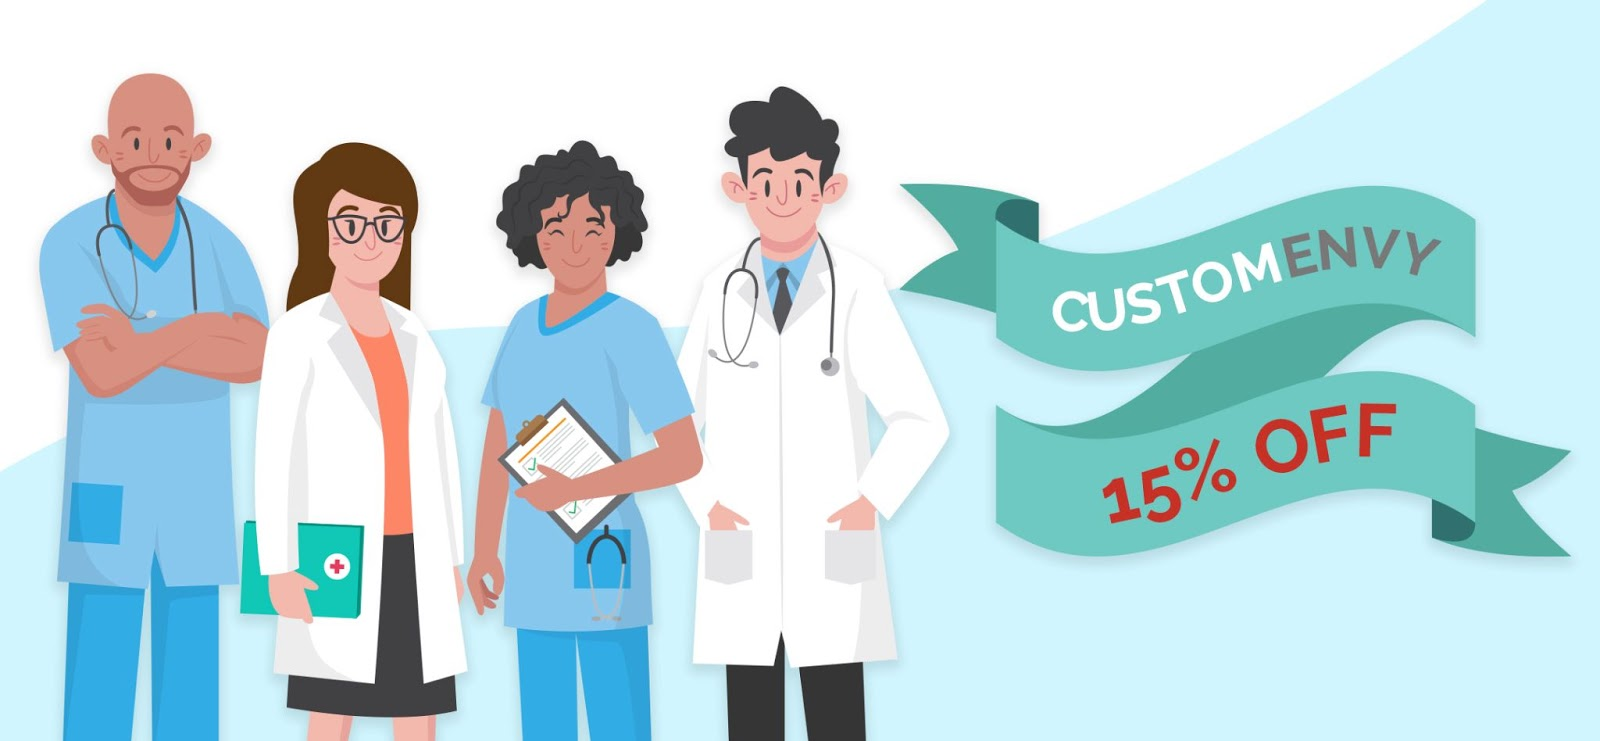 Our Dear Health Workers: Save 15% off on Custom Envy Products